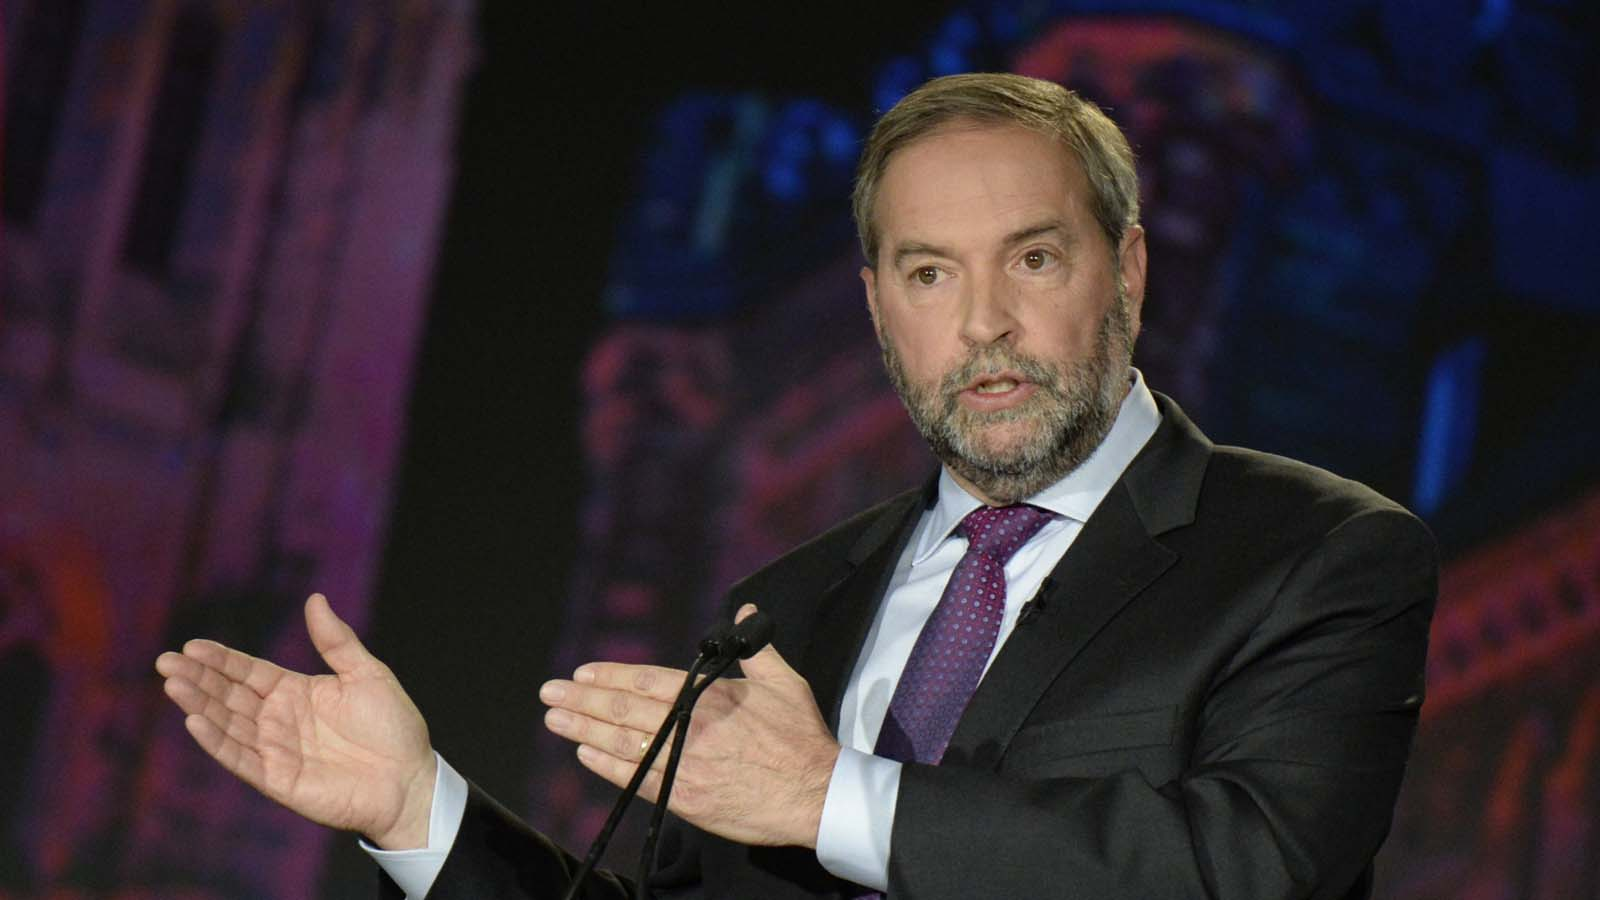 NDP leader Thomas Mulcair makes a point during the Globe and Mail Leaders Debate in Calgary, Alberta September 17, 2015. REUTERS/Mike Sturk  - RTS1NLH